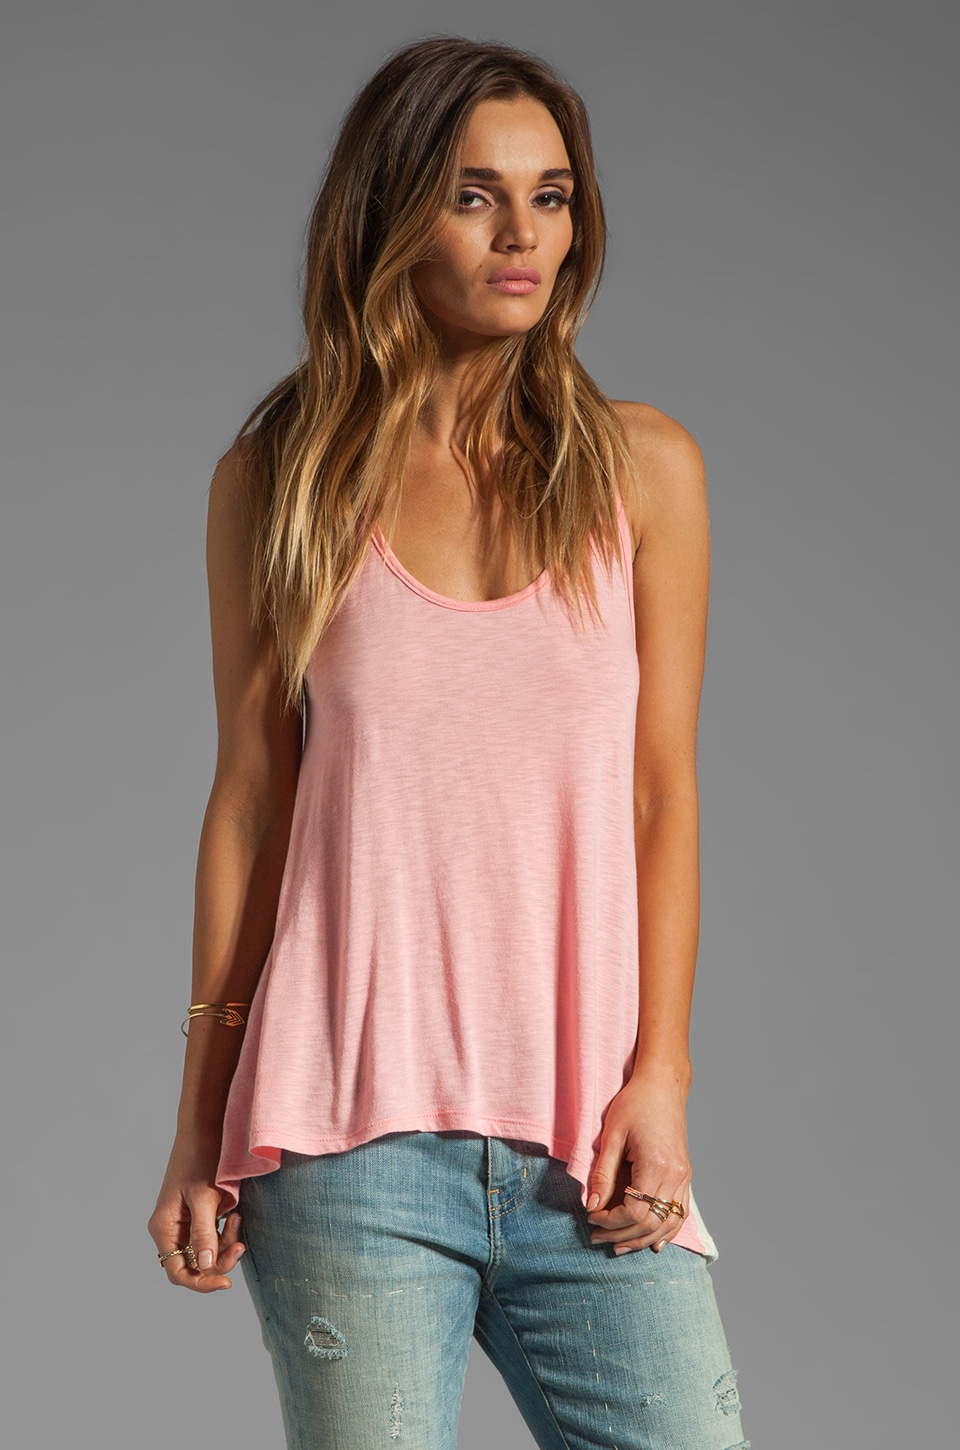 WOODLEIGH Erin Tank in Salmon